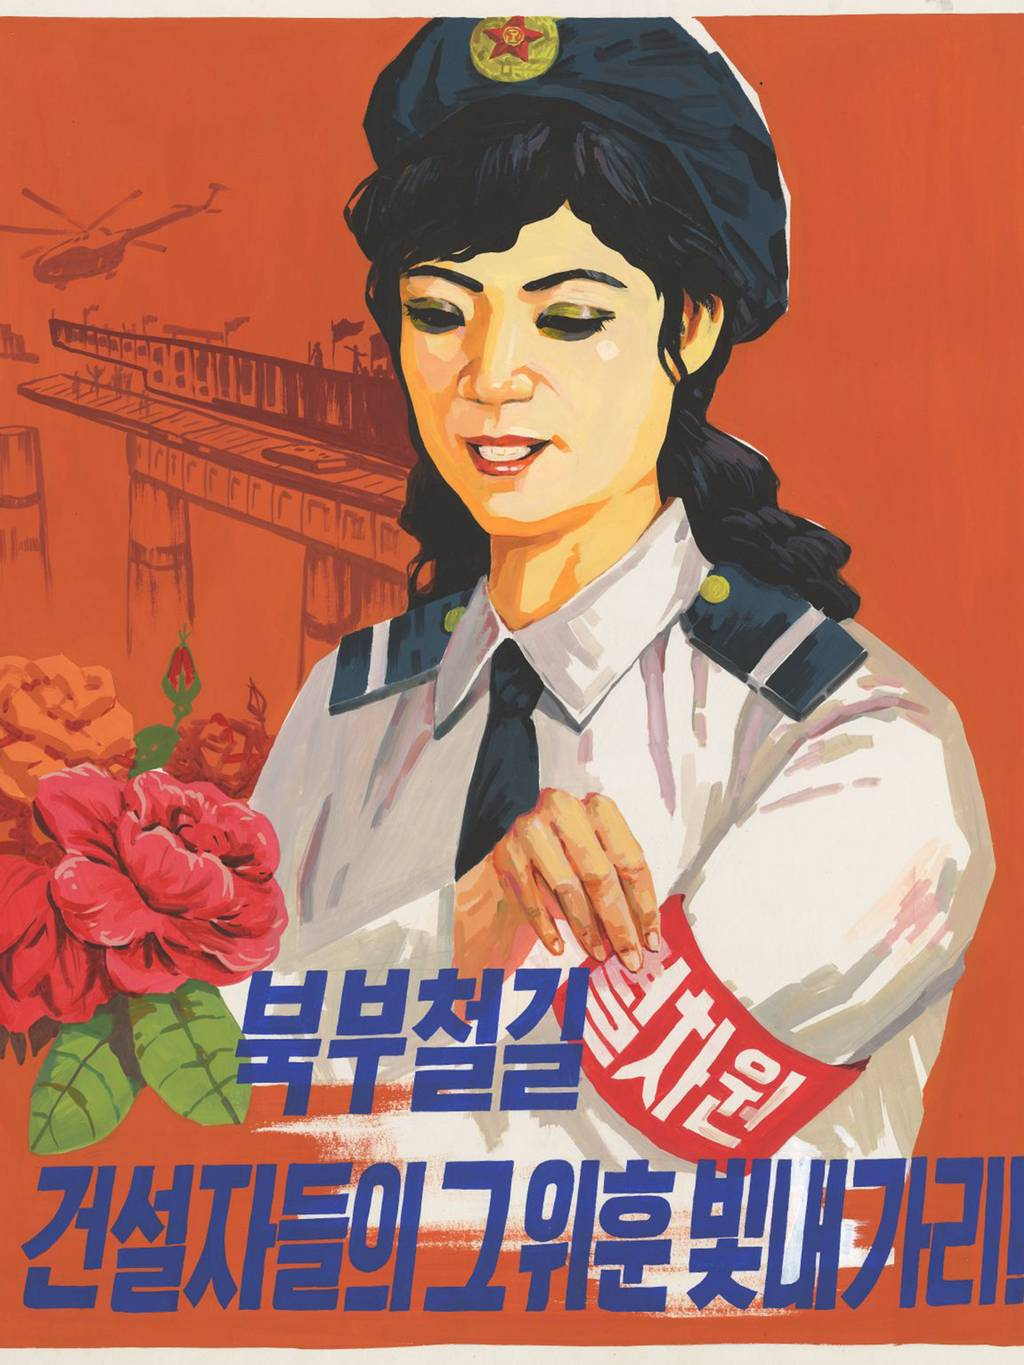 ZNL7vlXyhnk poster 10.jpg Rare North Korea Propoganda Posters Go On Display For First Time